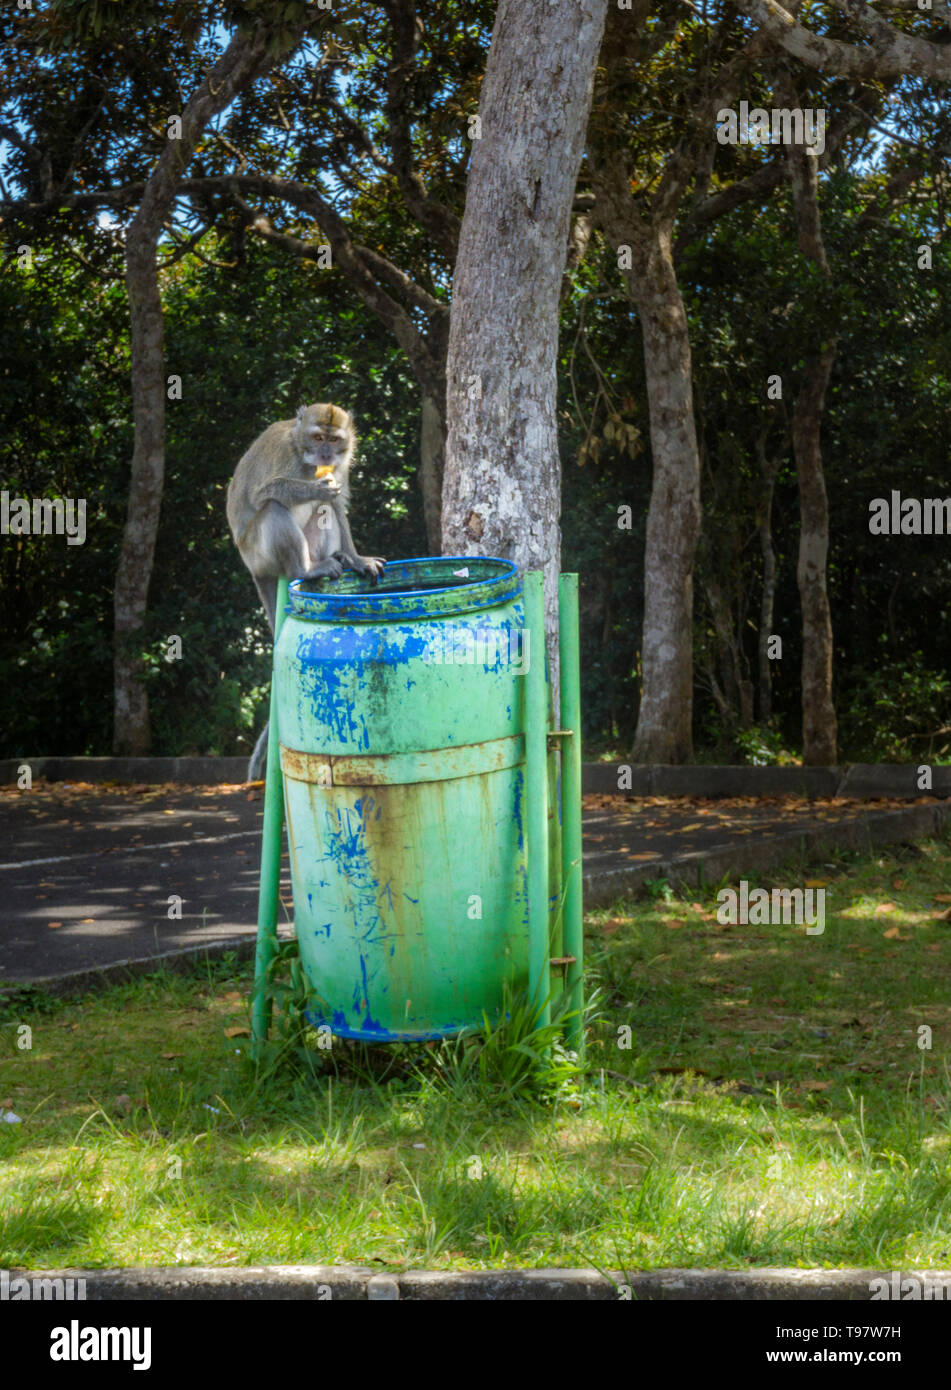 Nature park Mauritius - Macaque monkey eating a banana peel from a litter. - Stock Image